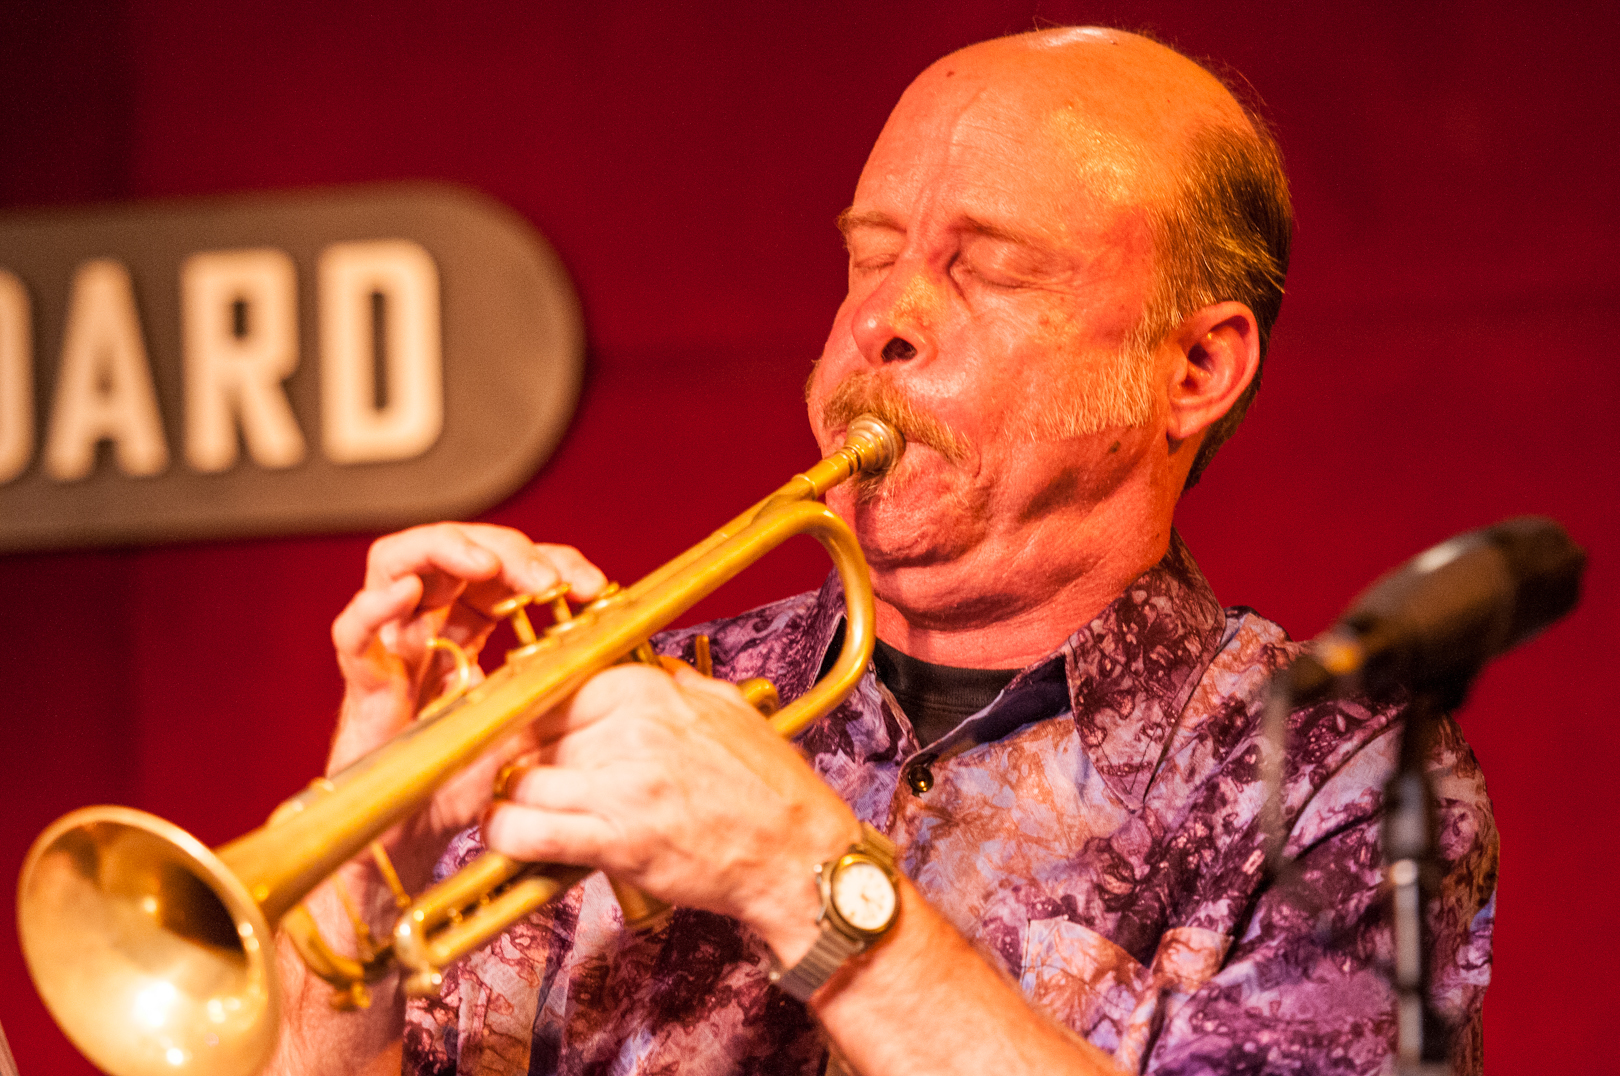 Tom Halter with the Either/Orchestra at the Jazz Standard